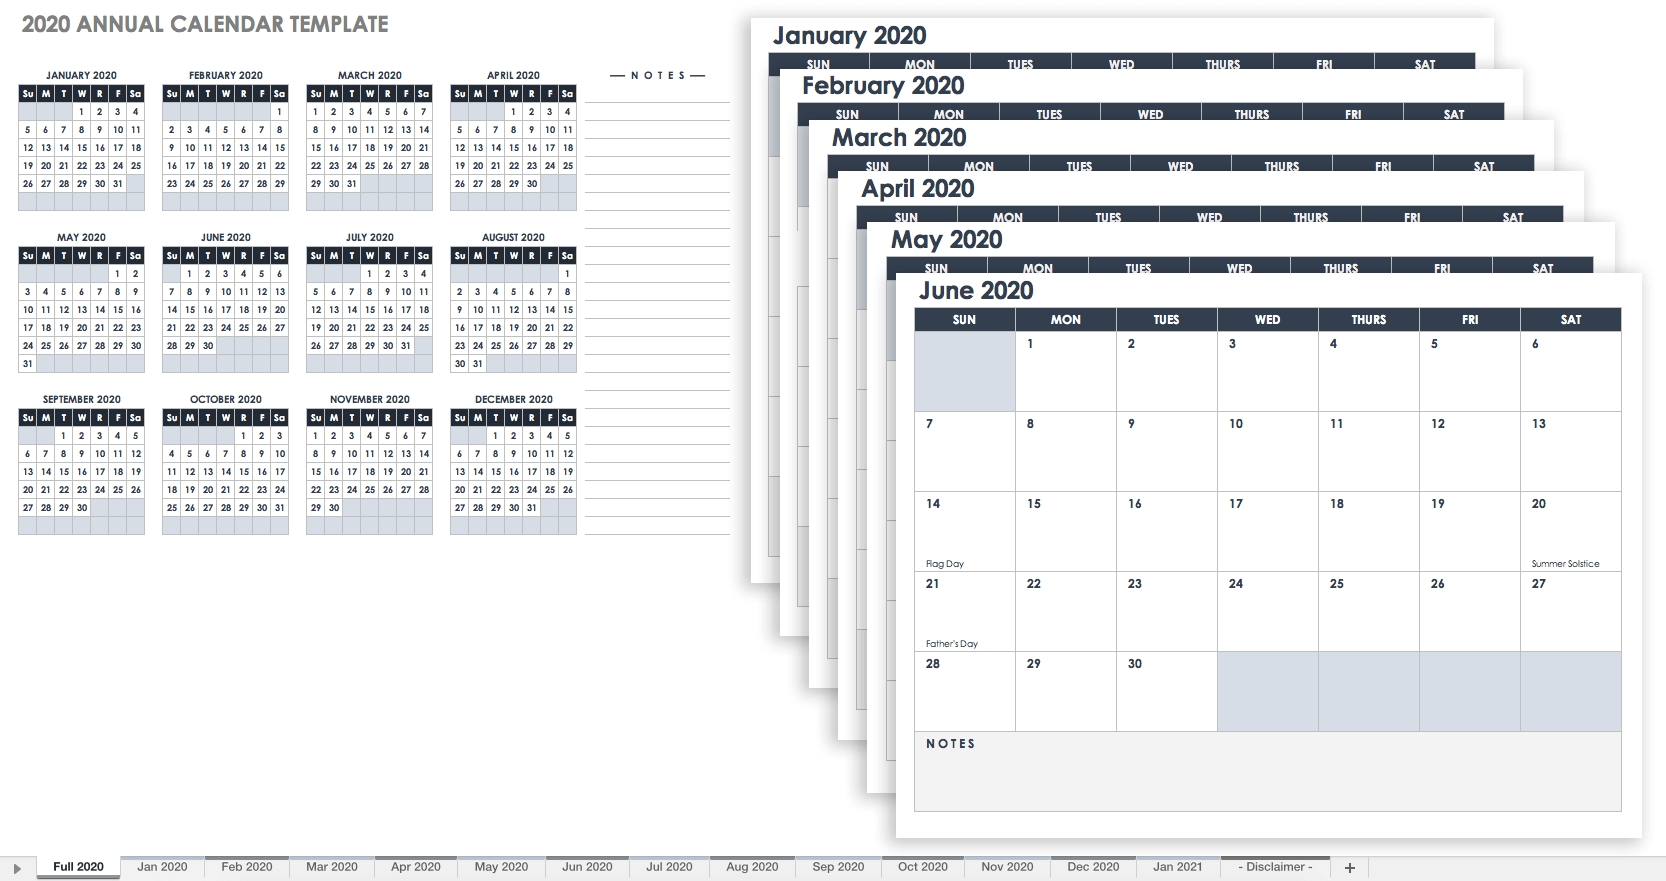 15 Free Monthly Calendar Templates | Smartsheet Calendar Template Starting With Monday